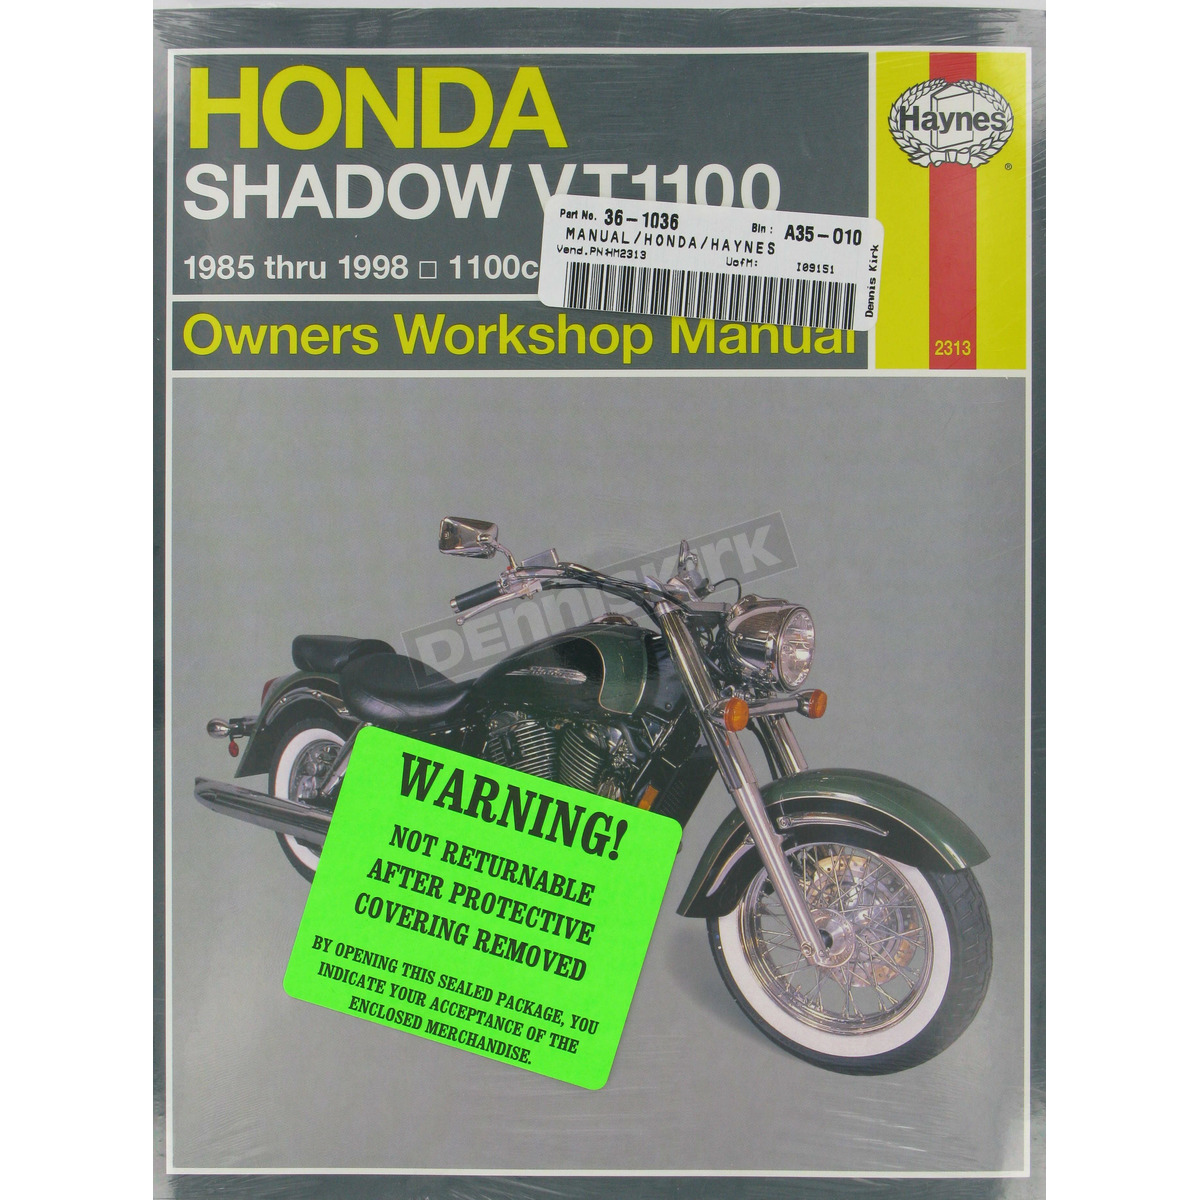 Haynes Honda Shadow VT1100 Repair Manual - 2313